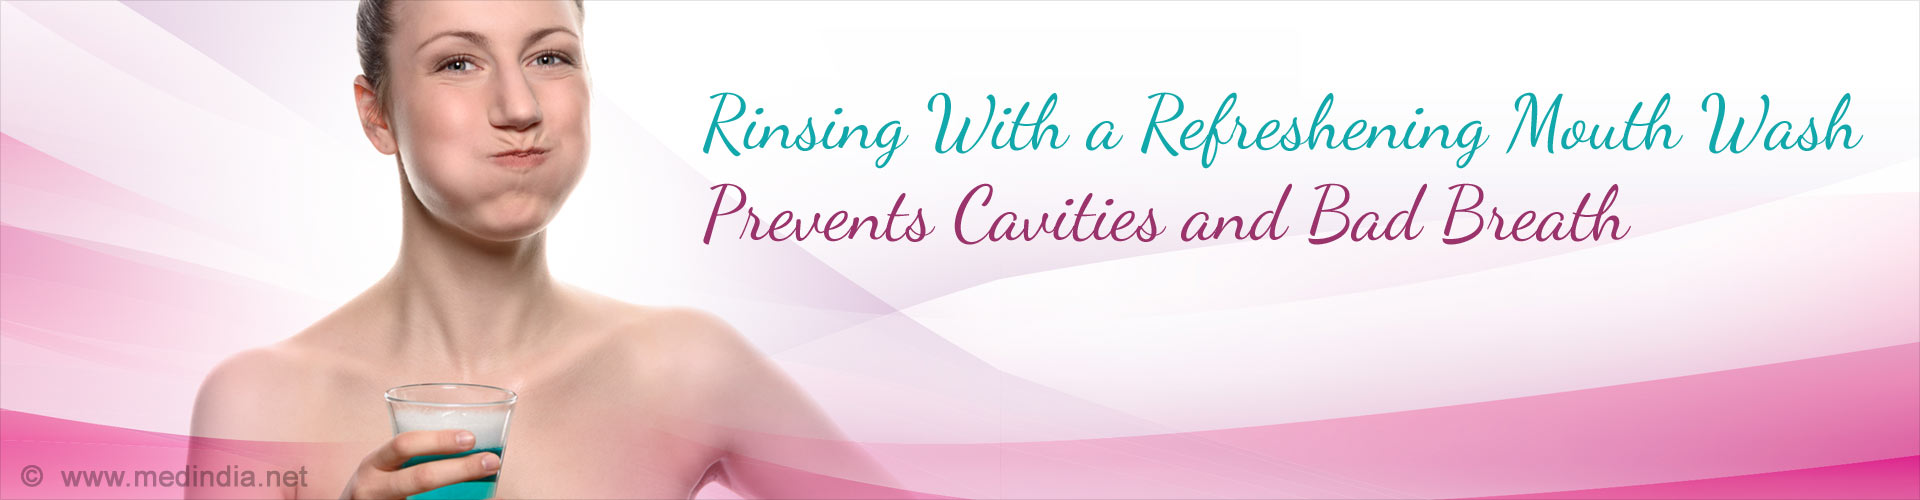 Rinsing Your Mouth With a Refreshening Mouth Wash Prevents Cavities and Bad Breath